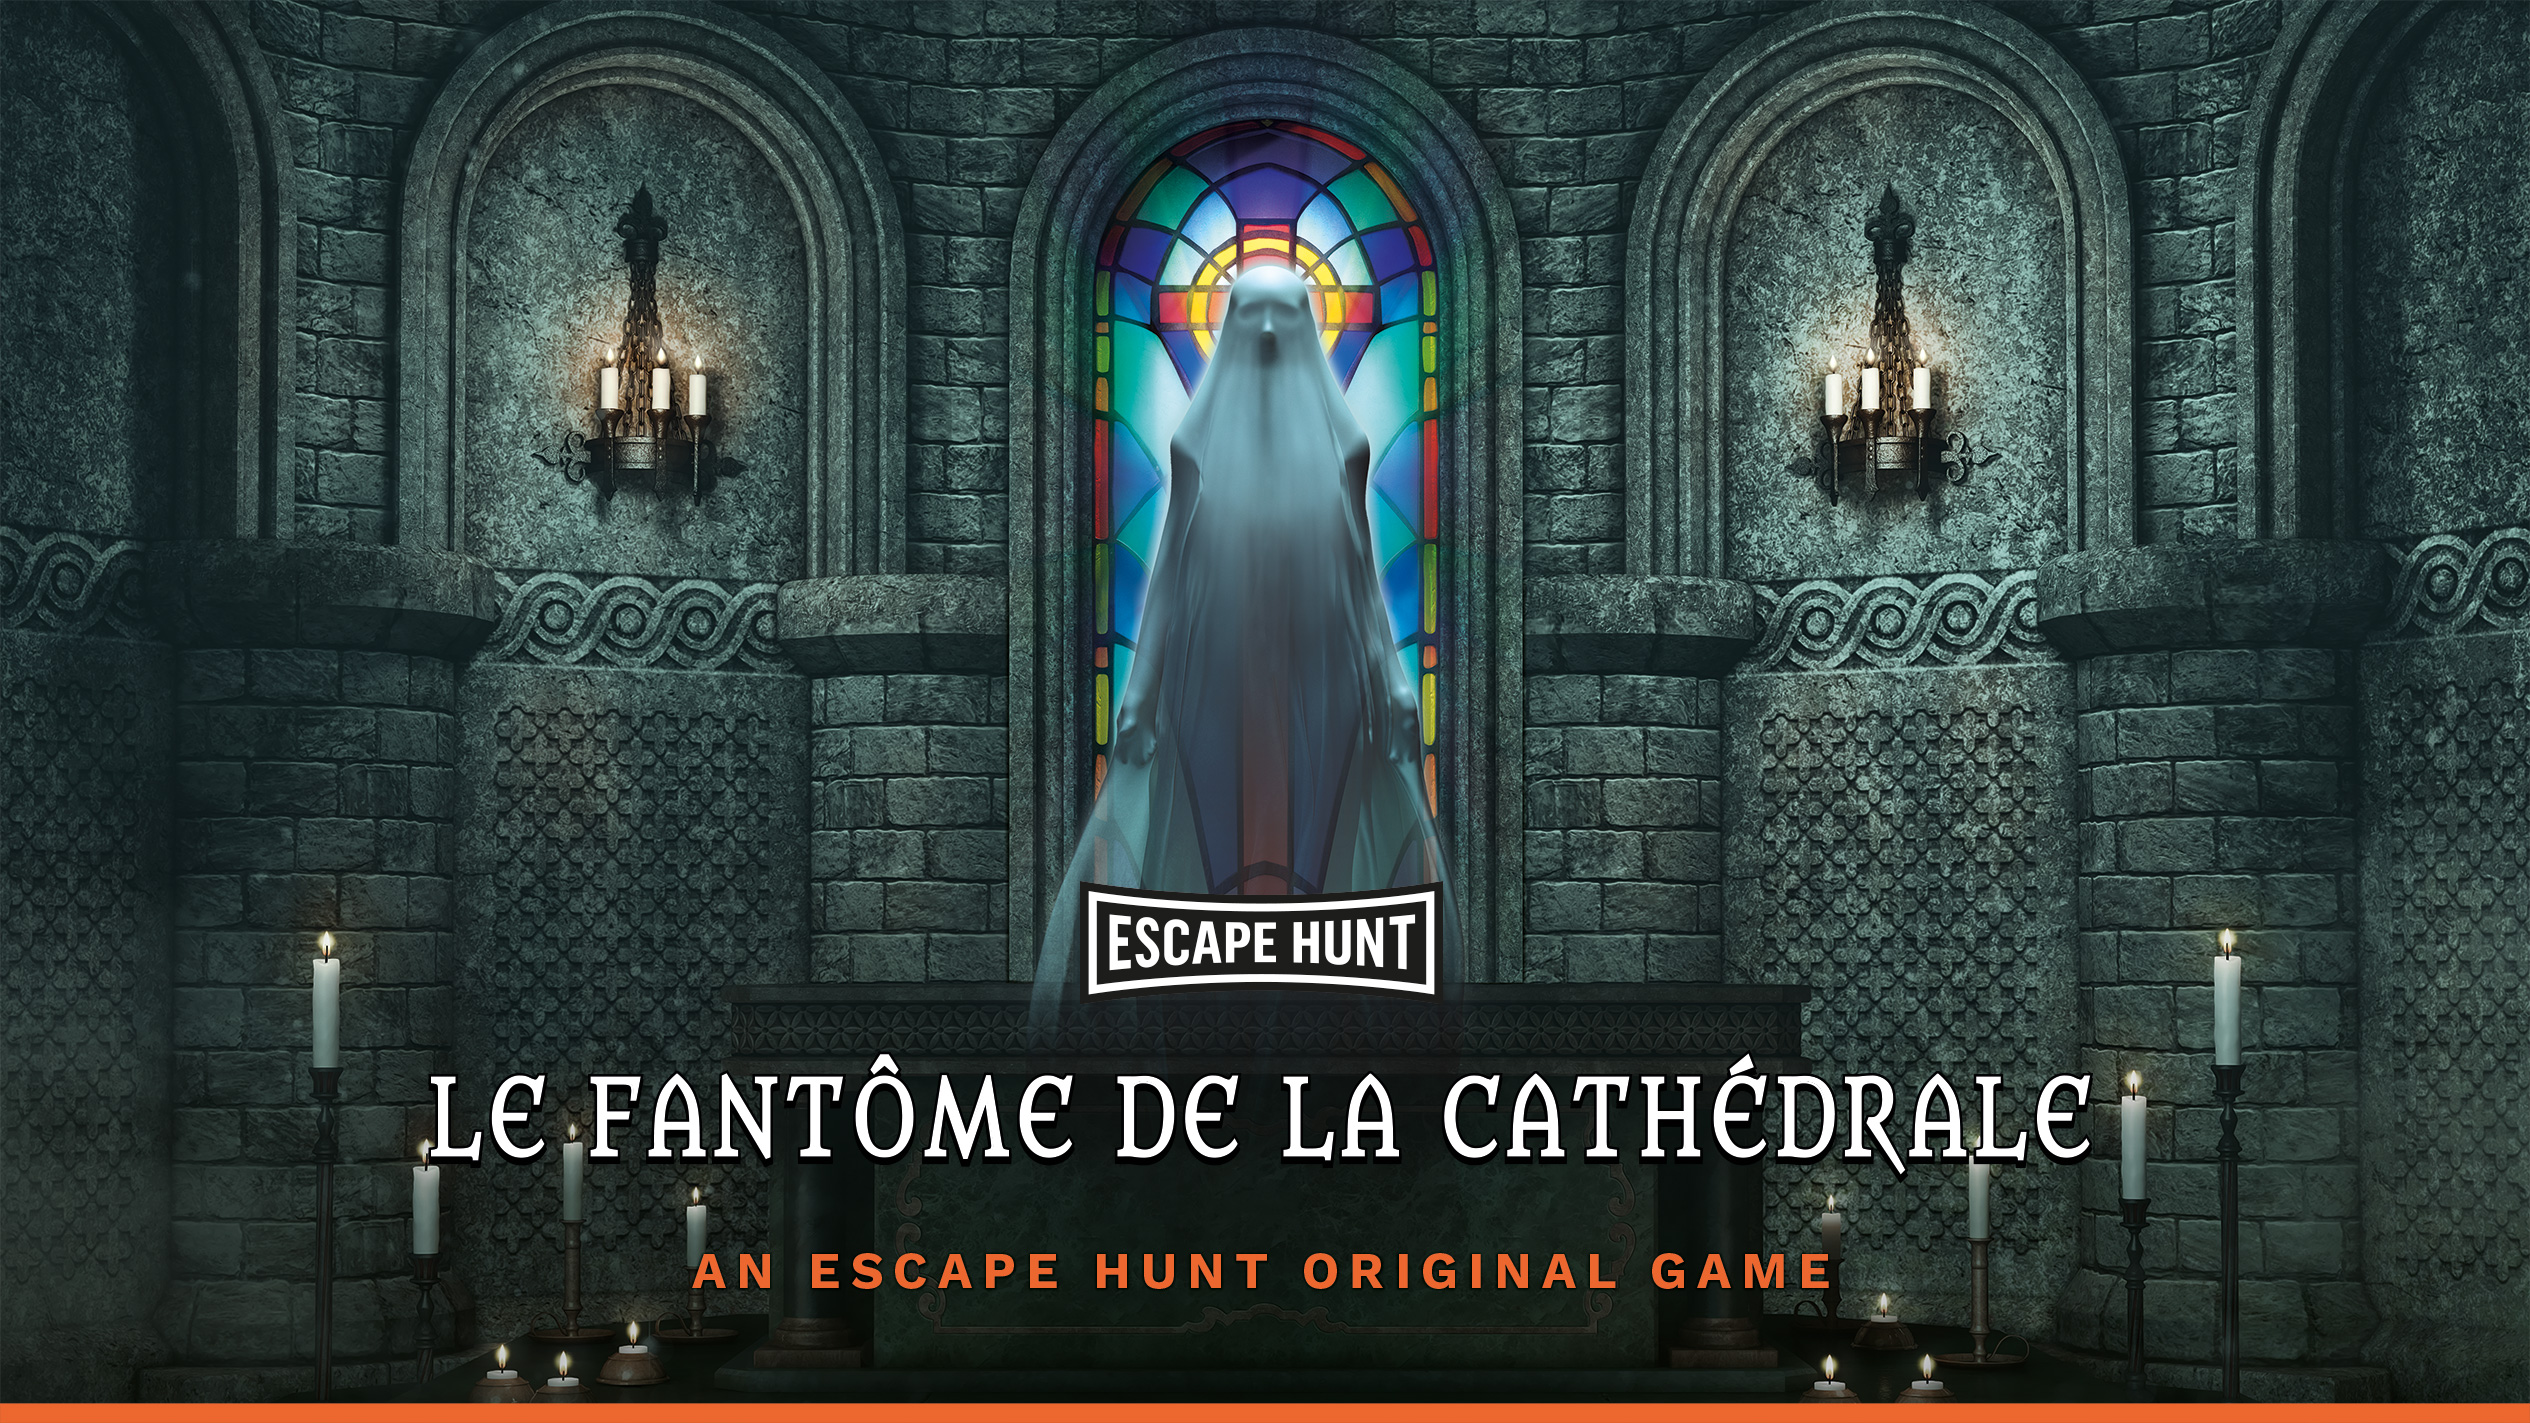 Escape Hunt Clermont Ferrand - Escape Game Clermont Ferrand Le Fantome De La Cathedrale